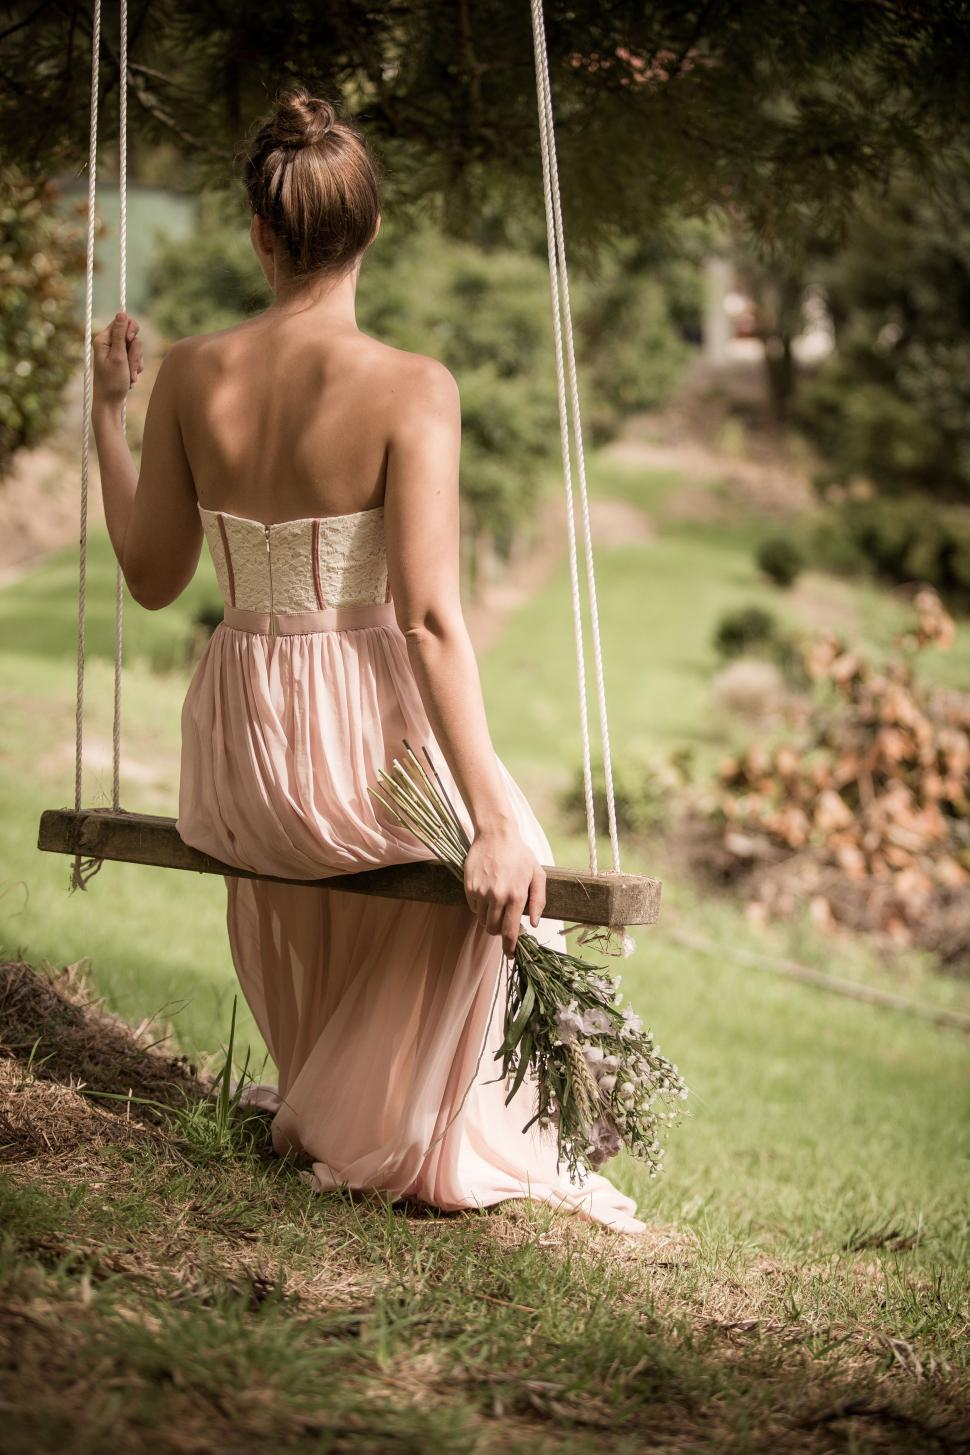 Download Free Stock Photo of Woman on swing holding flower bouquet